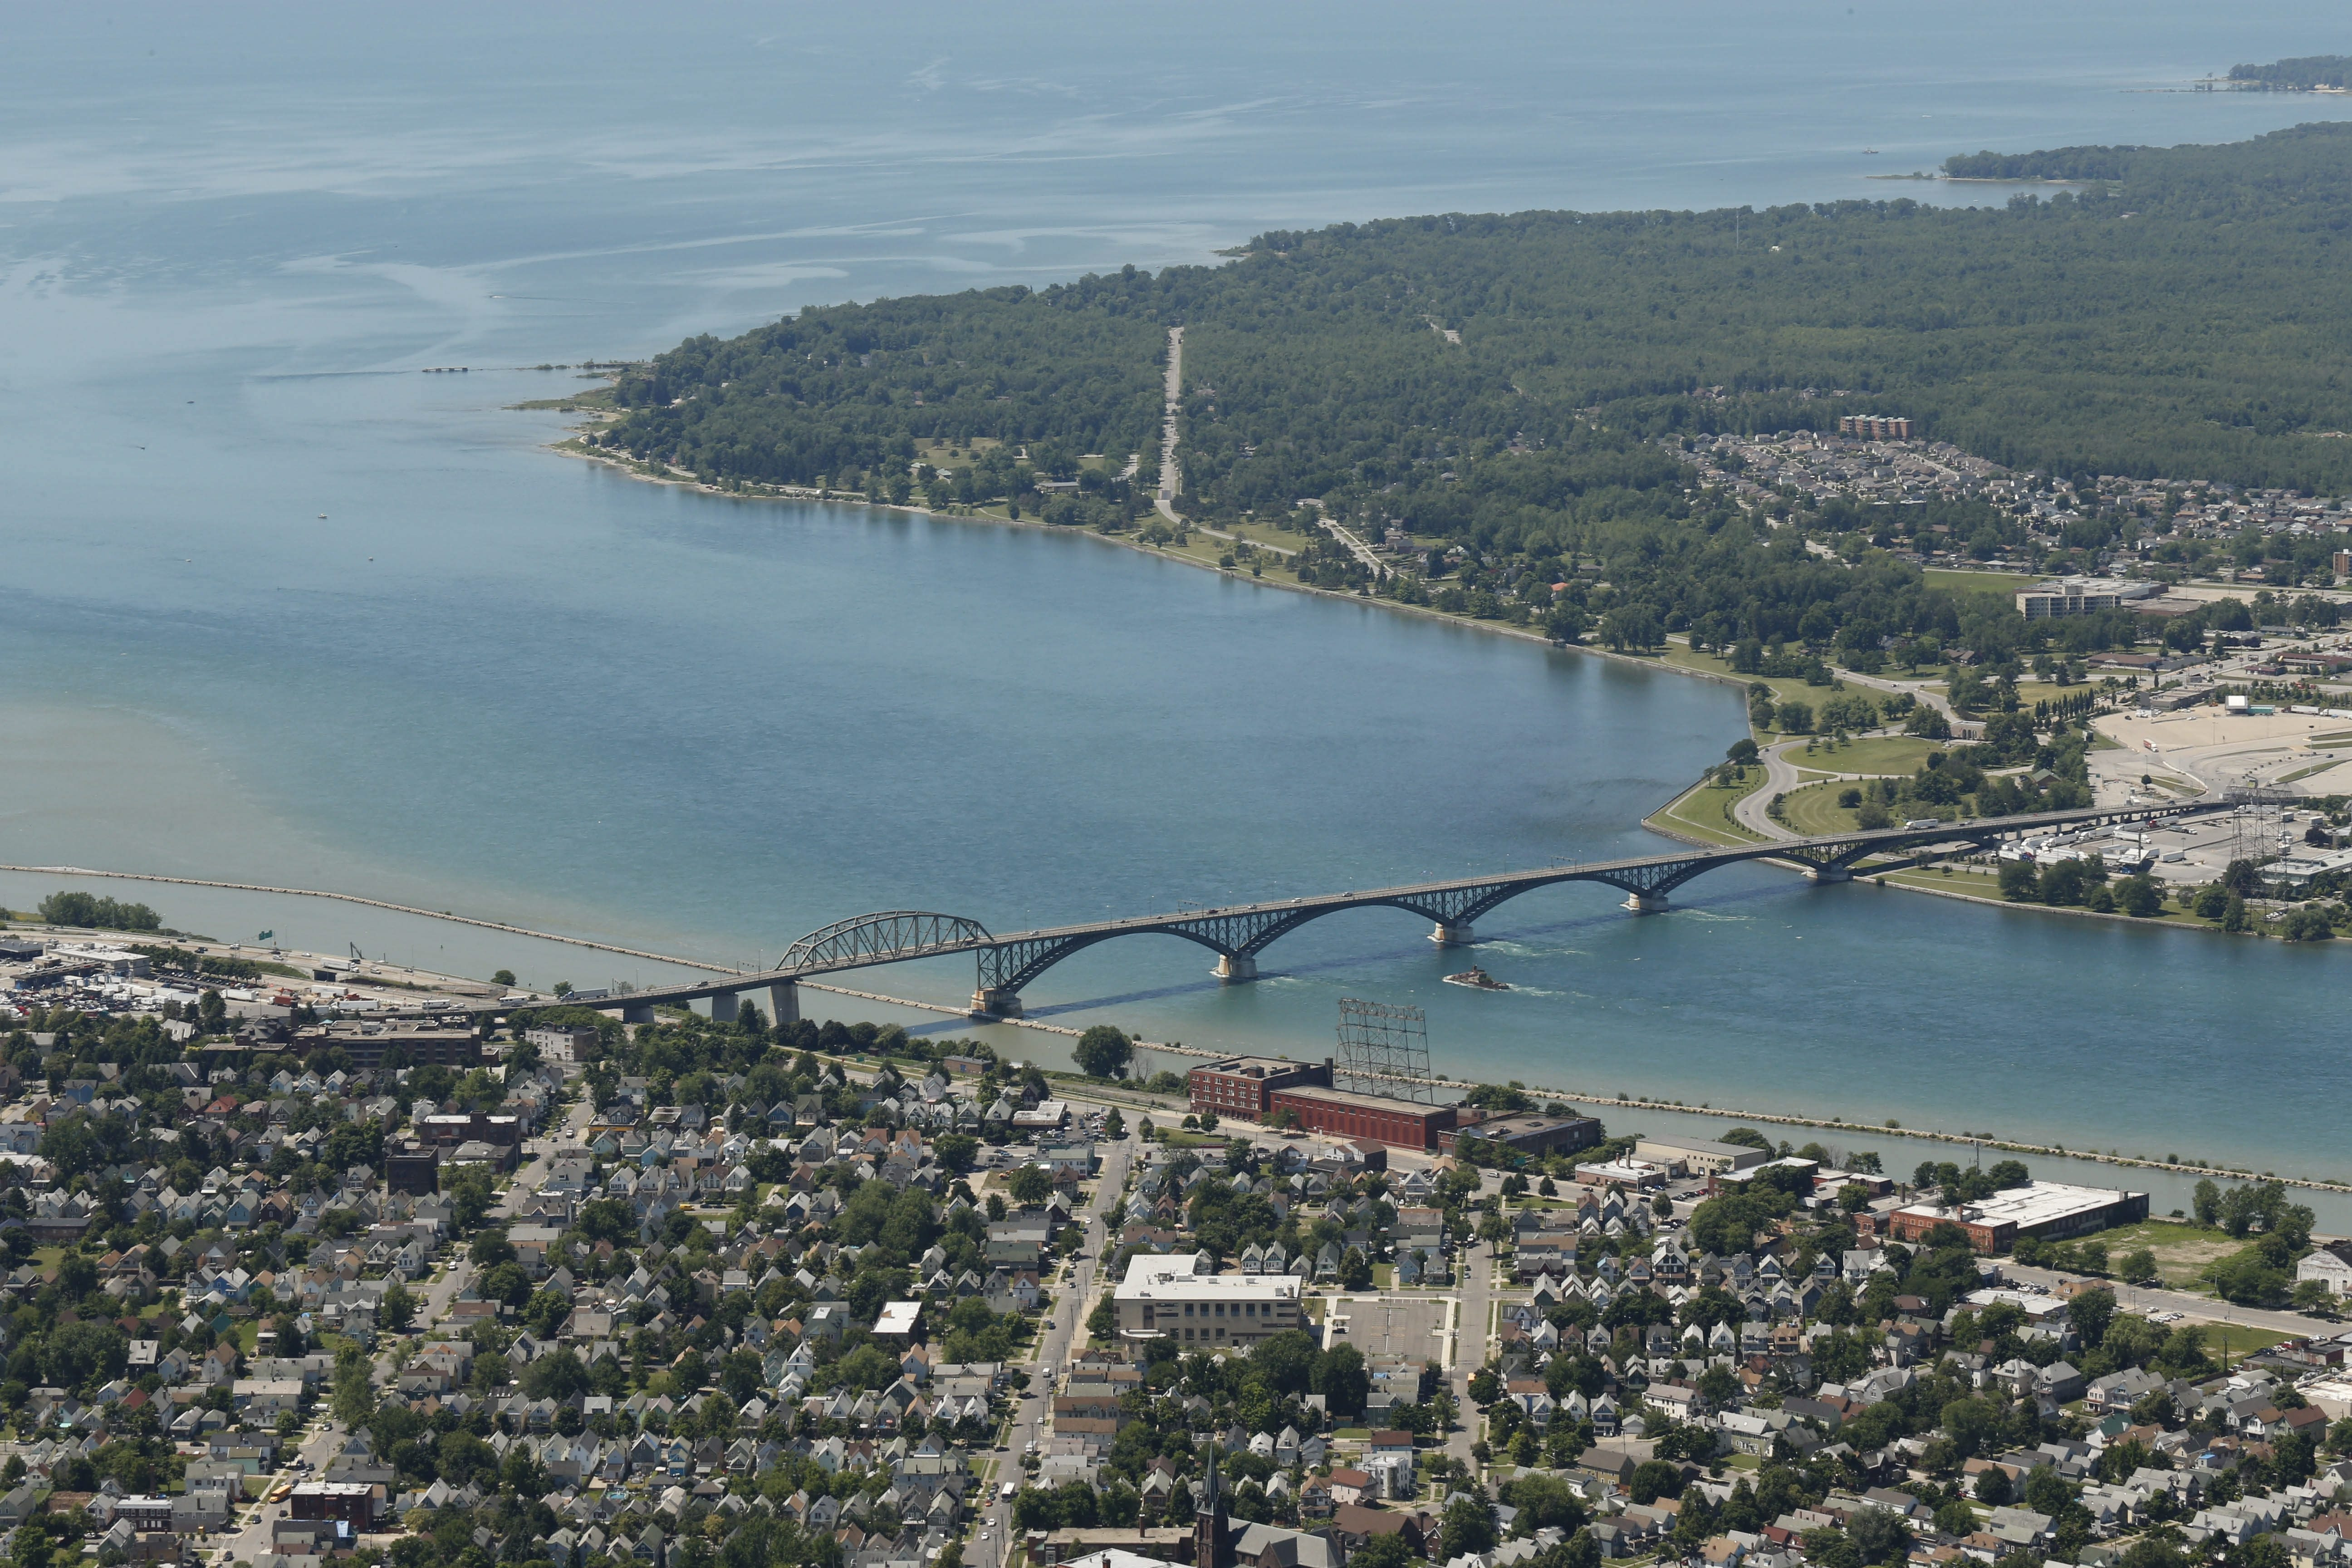 Nexus, the program that allows pre-registered and pre-approved cross-border travelers special and expedited access in dedicated lanes, serves about 20 percent of all border travelers between Fort Erie and Buffalo, according to Peace Bridge Authority officials.